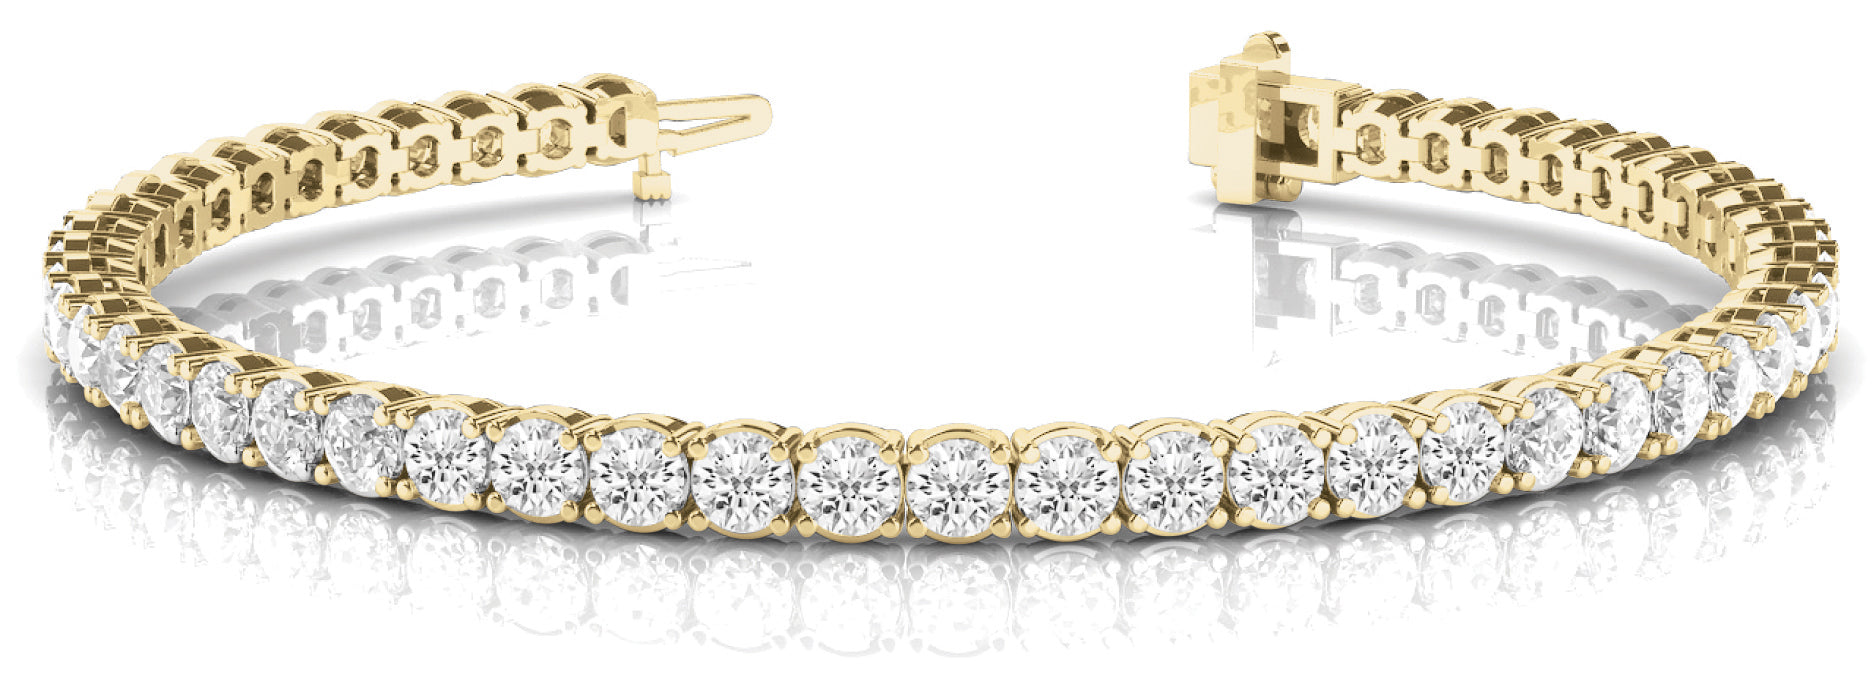 Line Diamond Bracelet 3.31ct tw Ladies - 14kt Yellow Gold